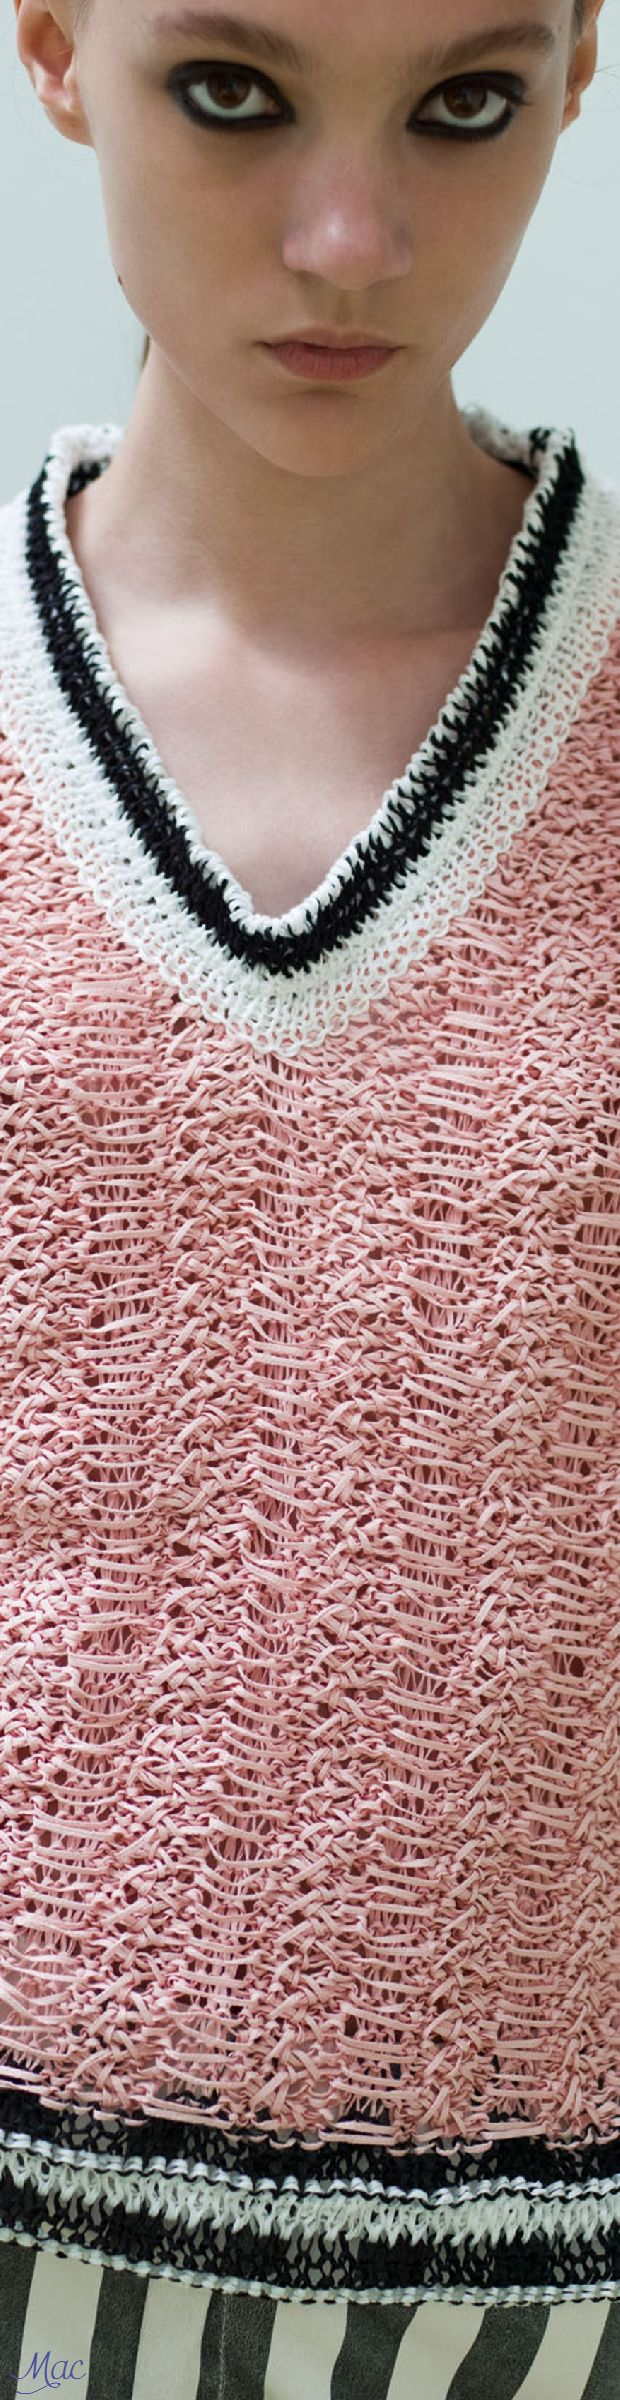 373 best SWEATER DETAILS images on Pinterest | Knits, Knitting ...